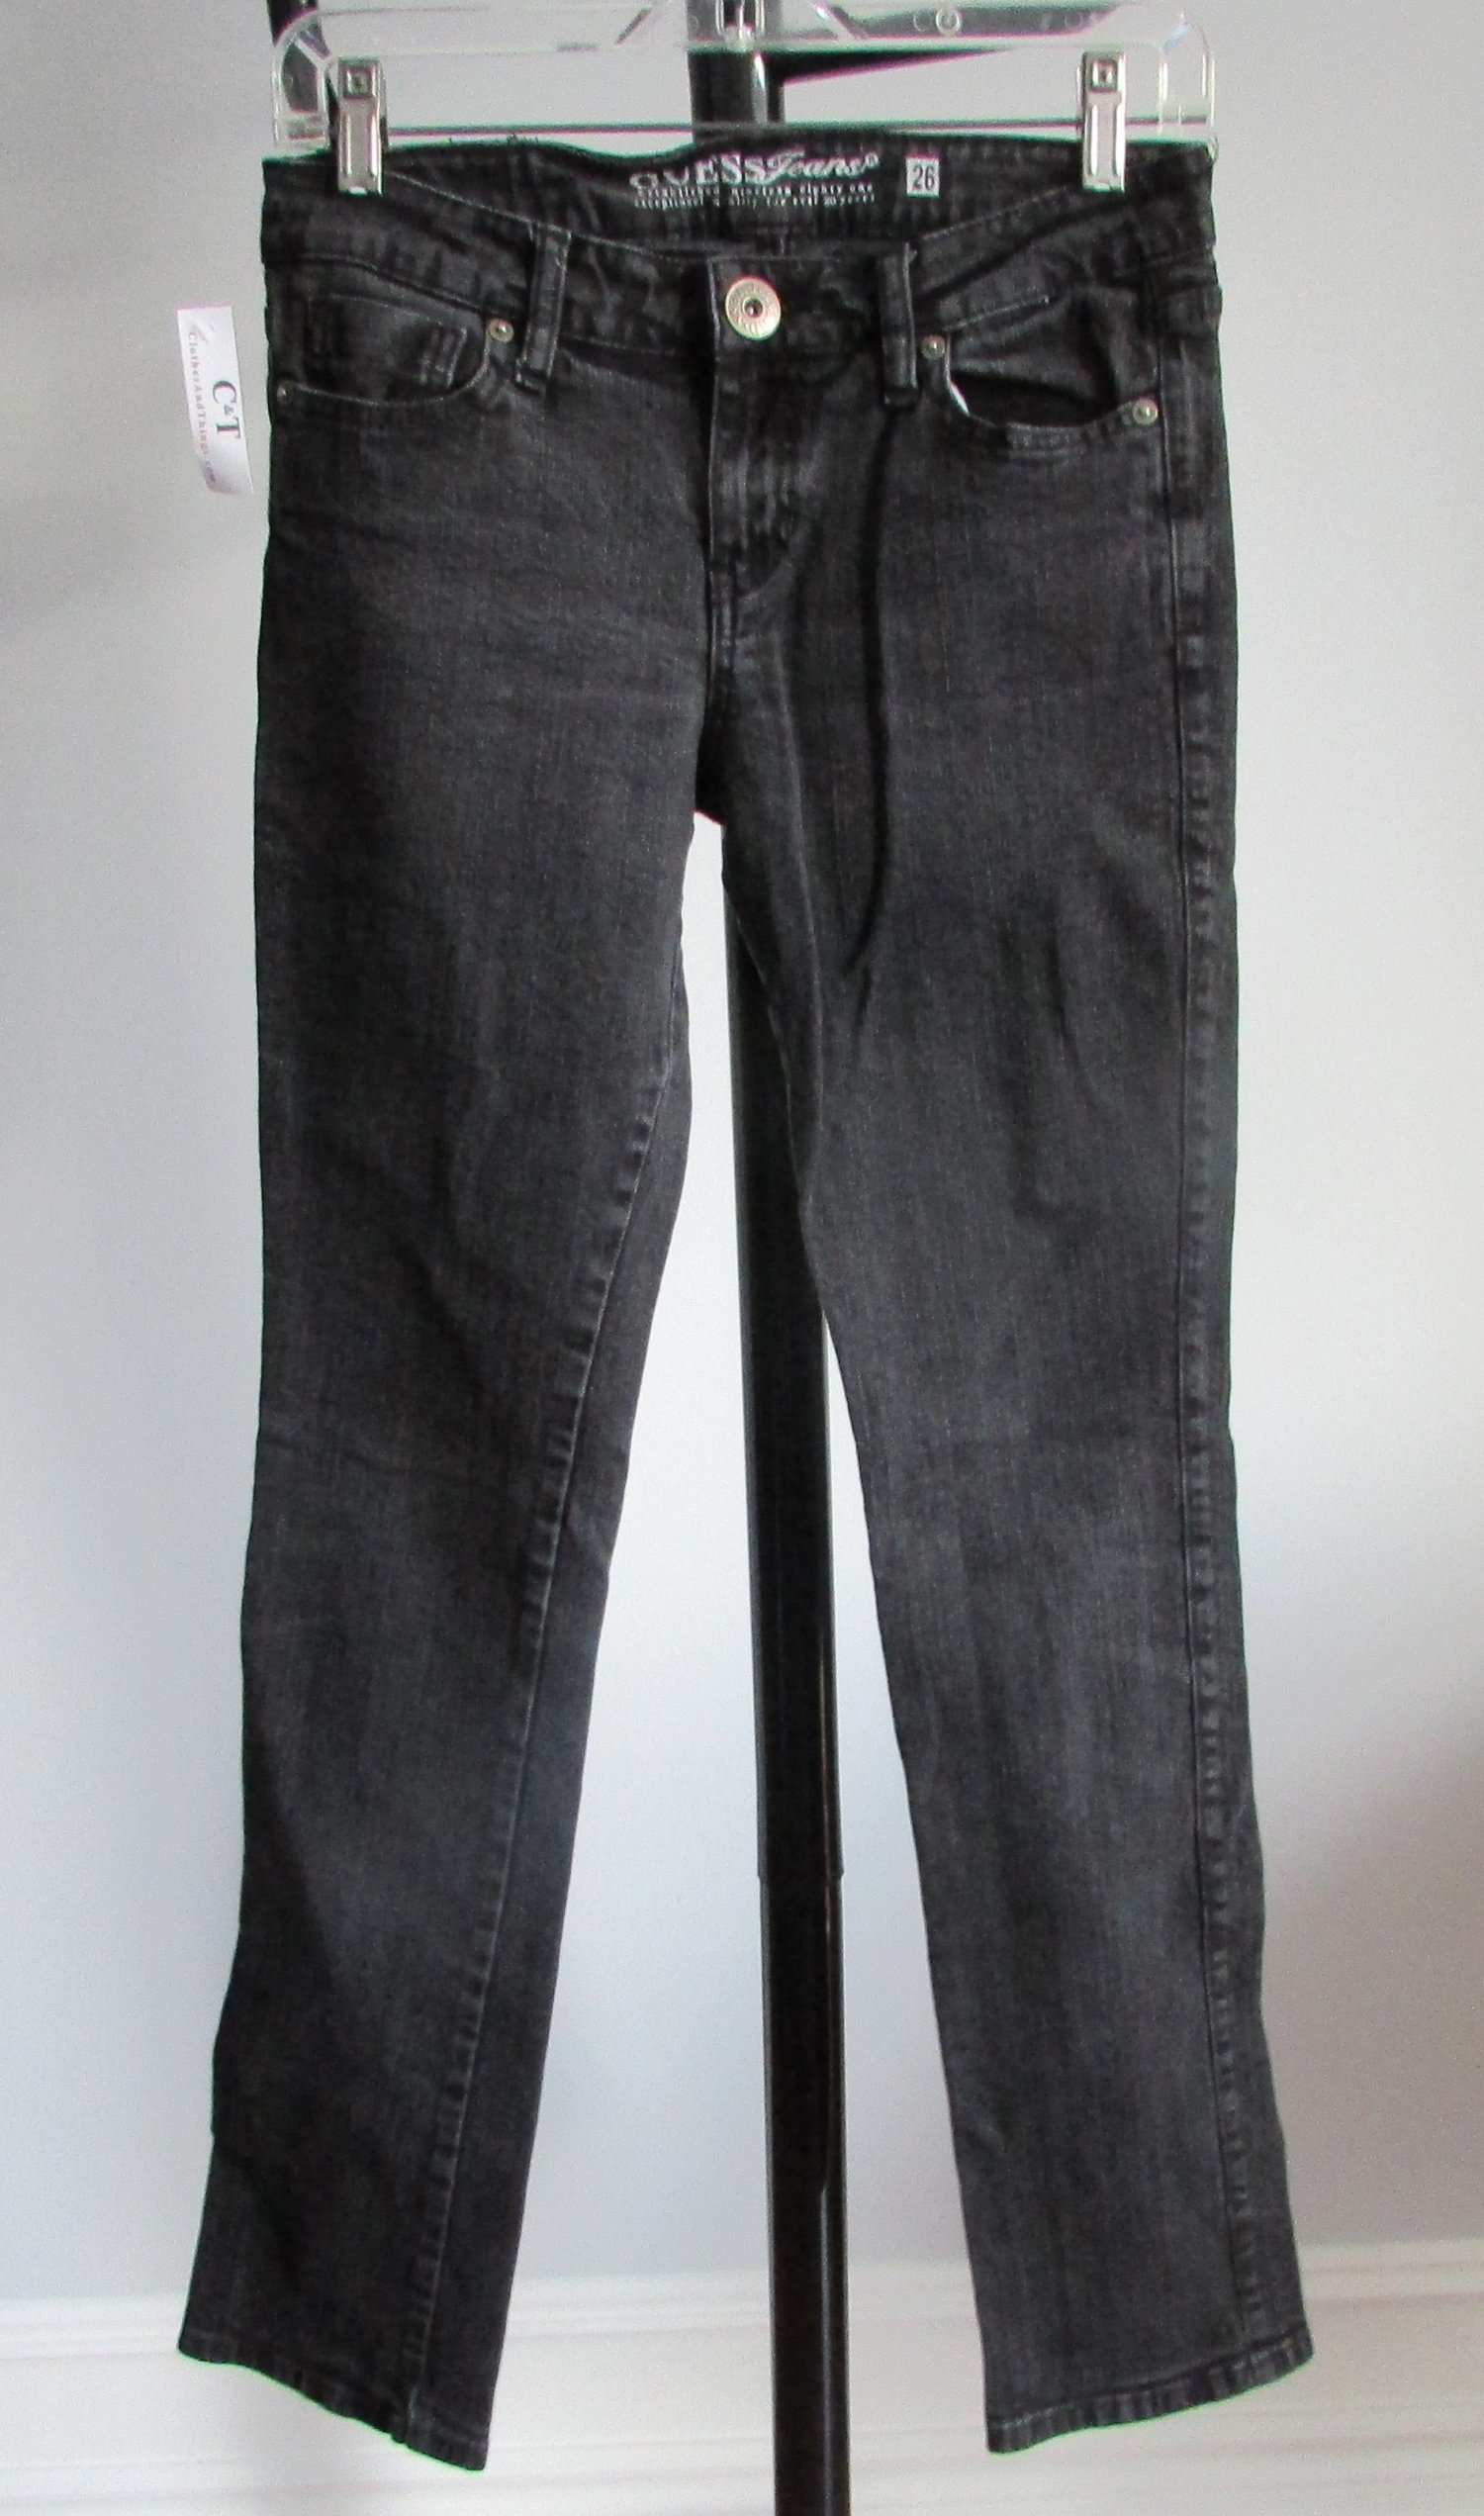 GUESS Black Skinny Stretch Jeans - 26